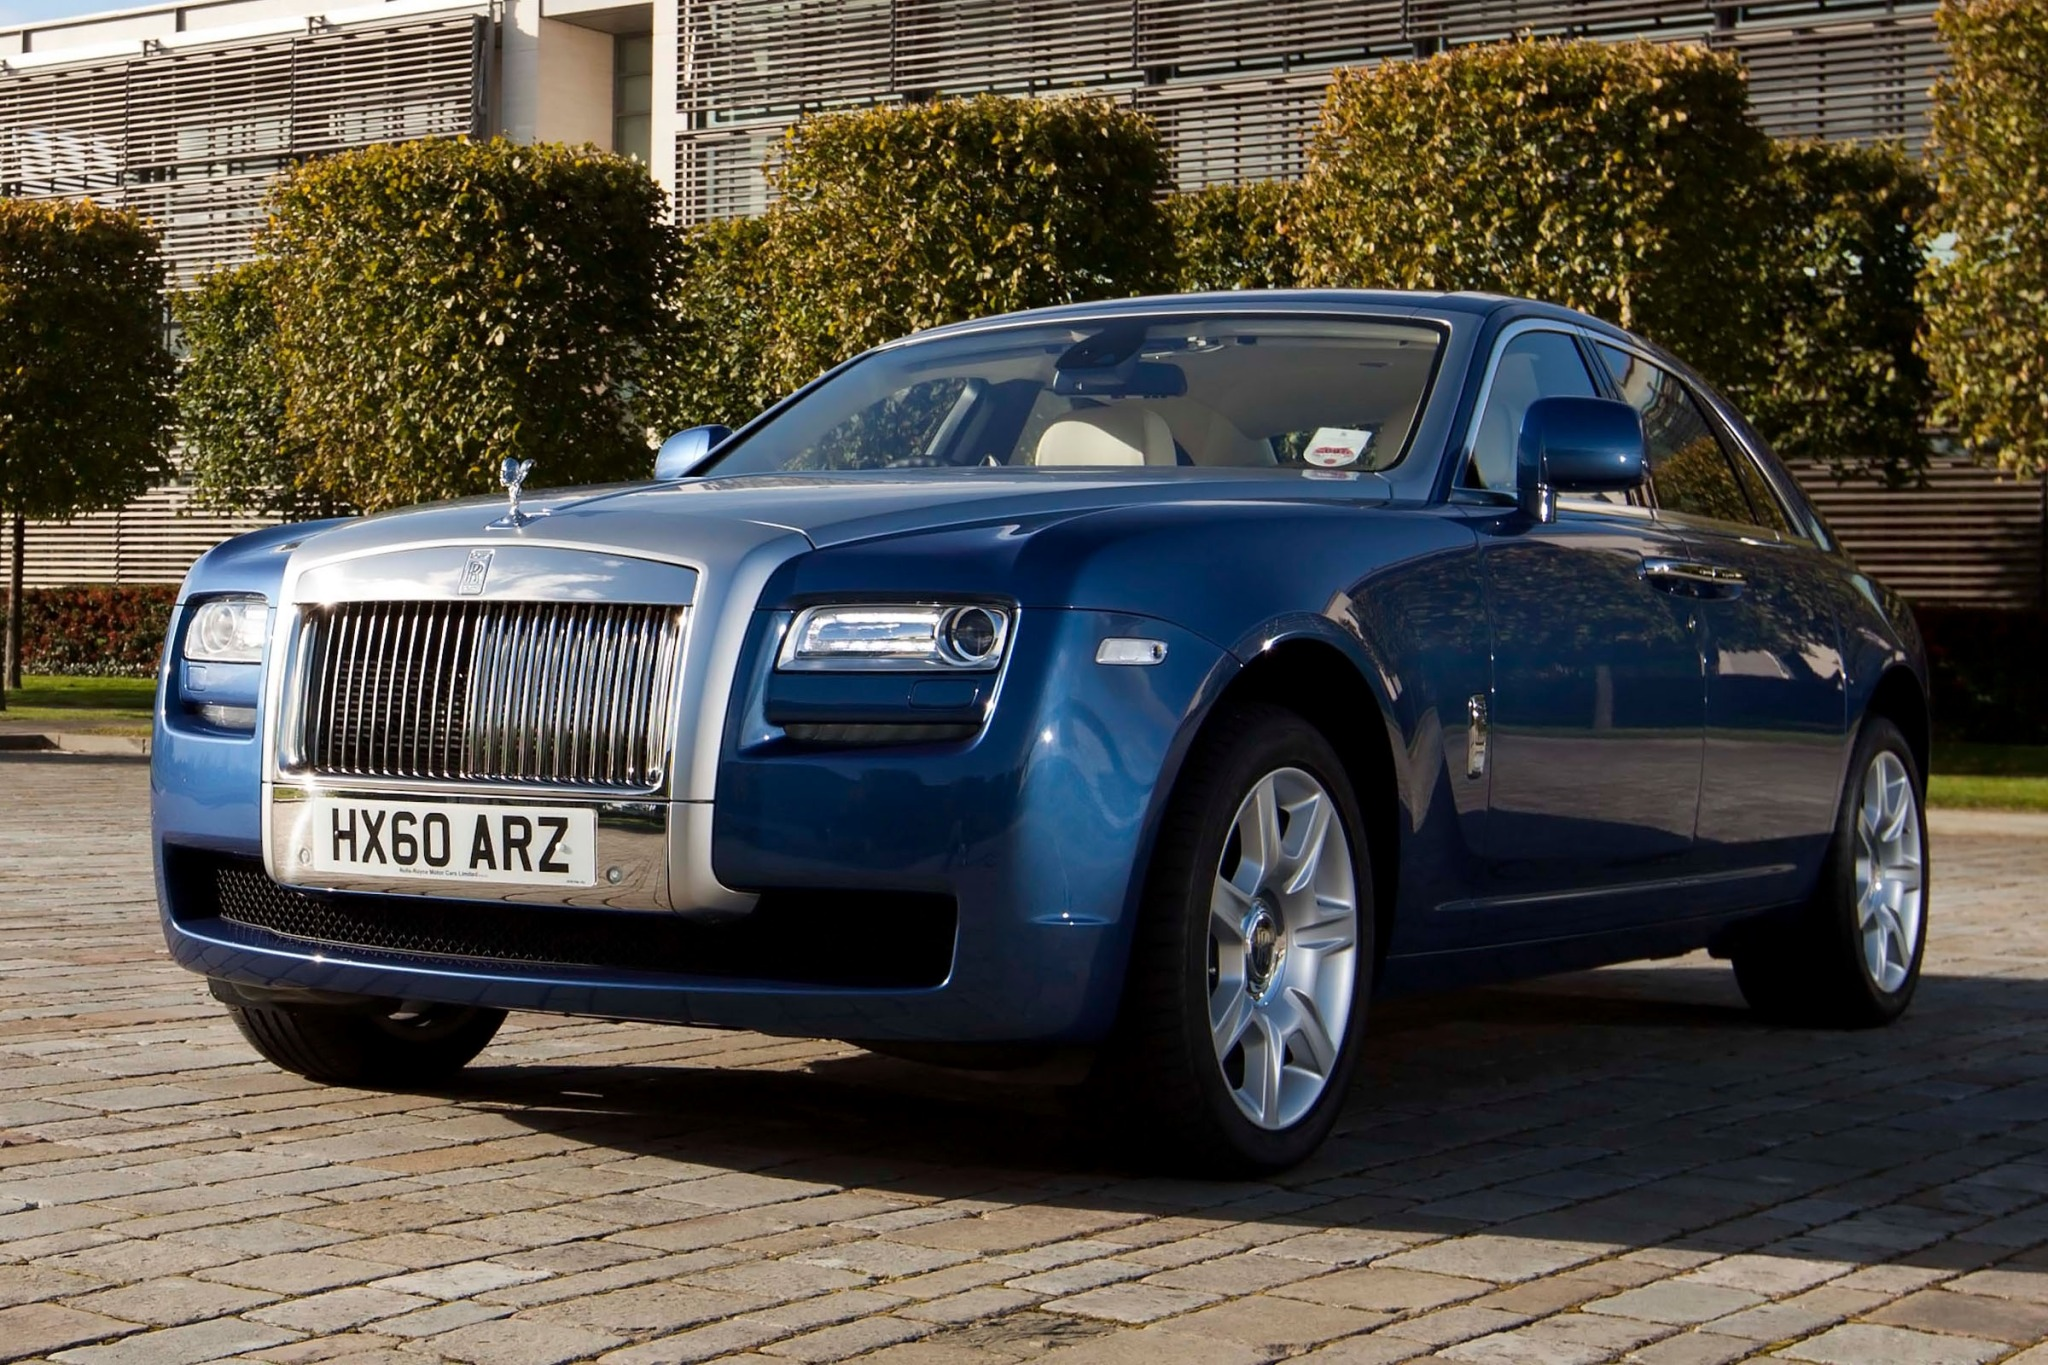 2012 Rolls-Royce Ghost EW interior #2